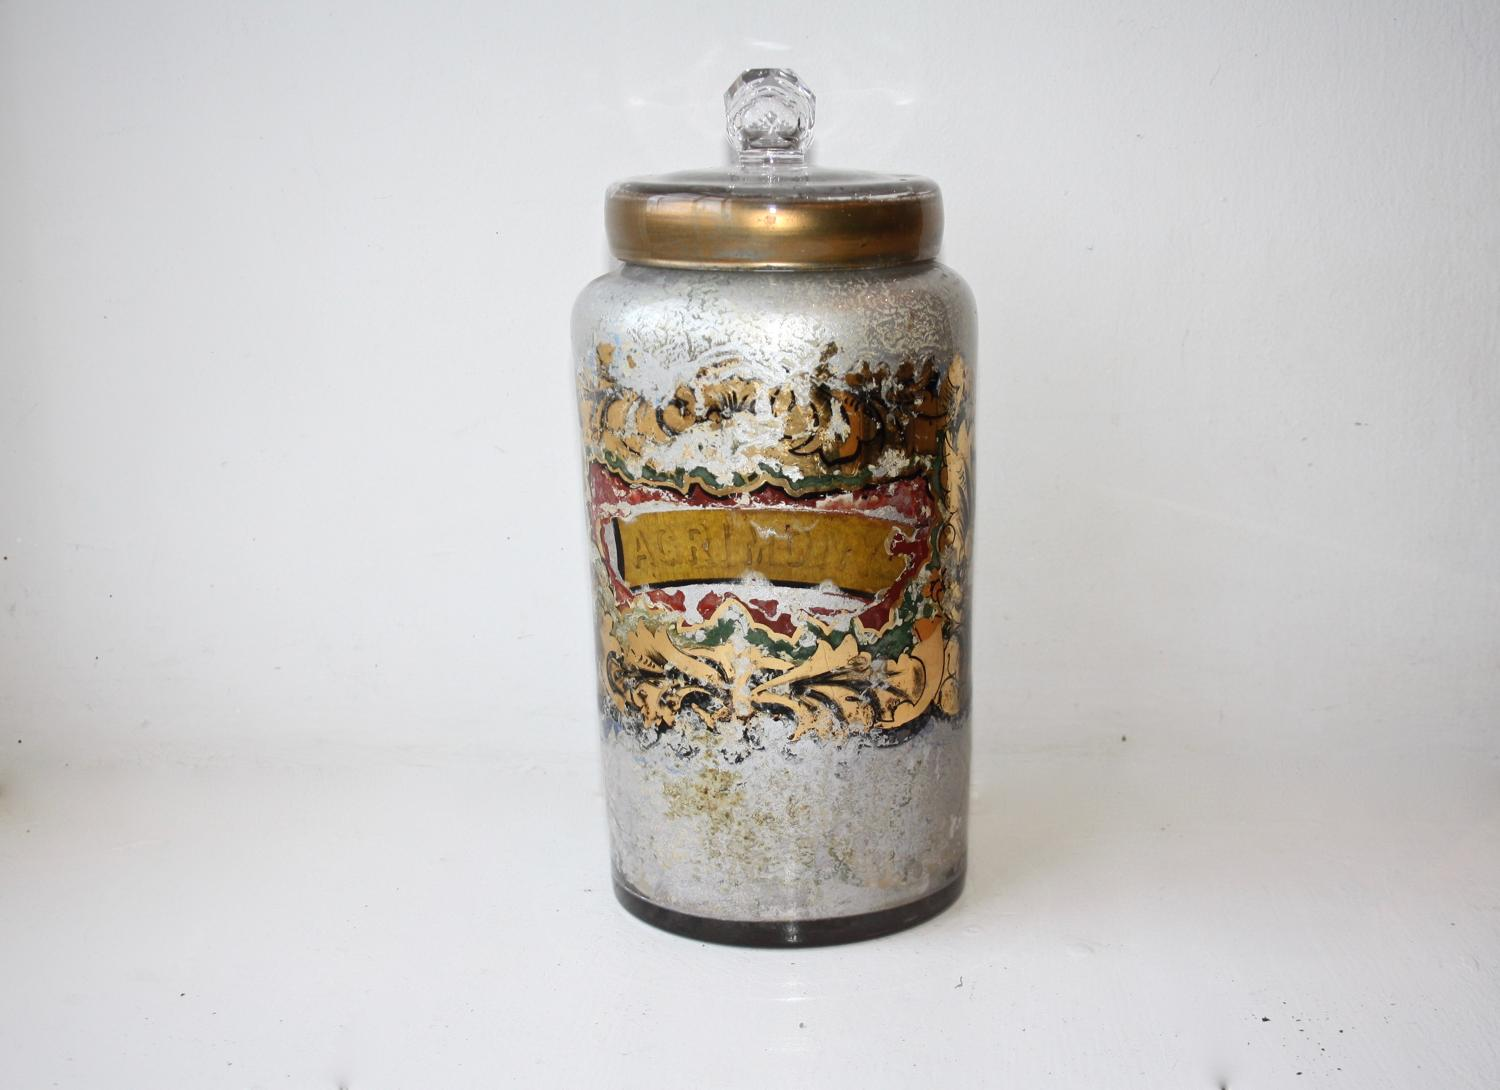 Small 'agrimony' apothecary bottle/jar